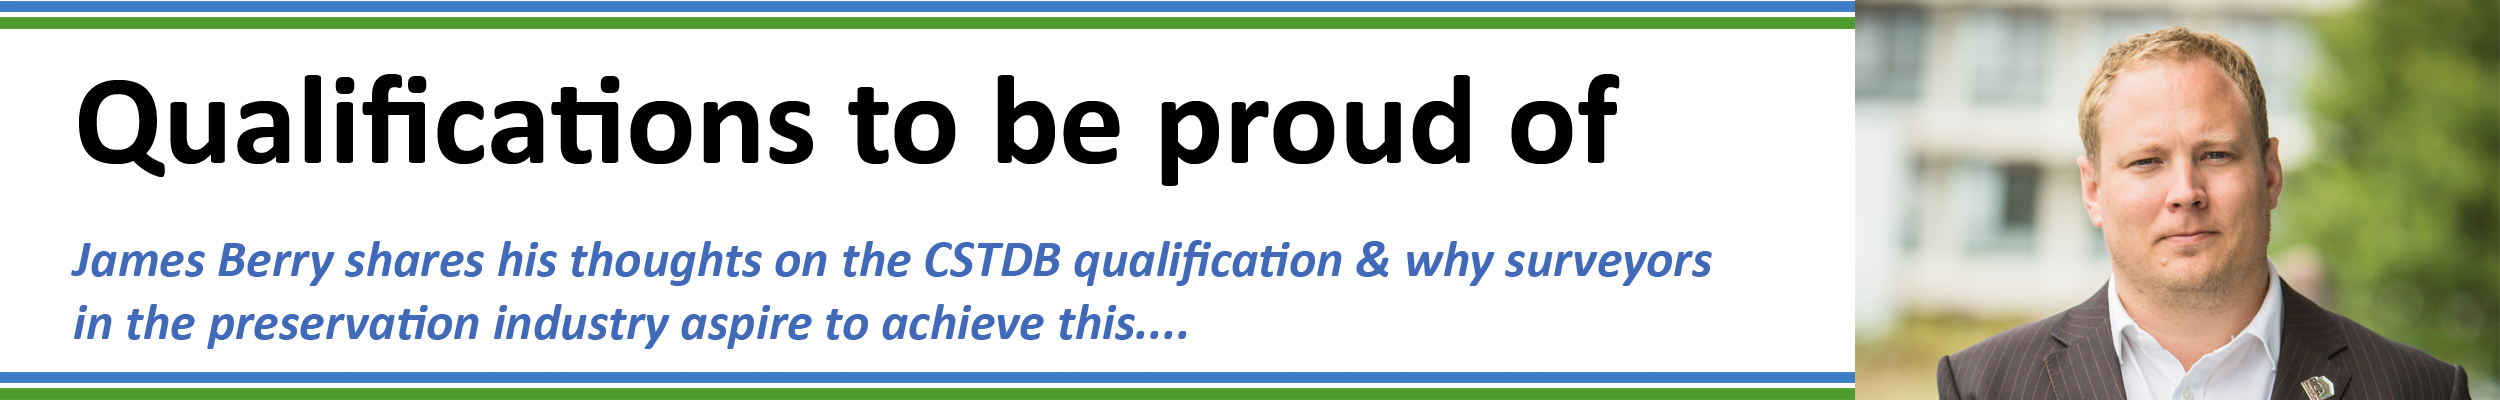 Qualifications to be proud of_CSTDB